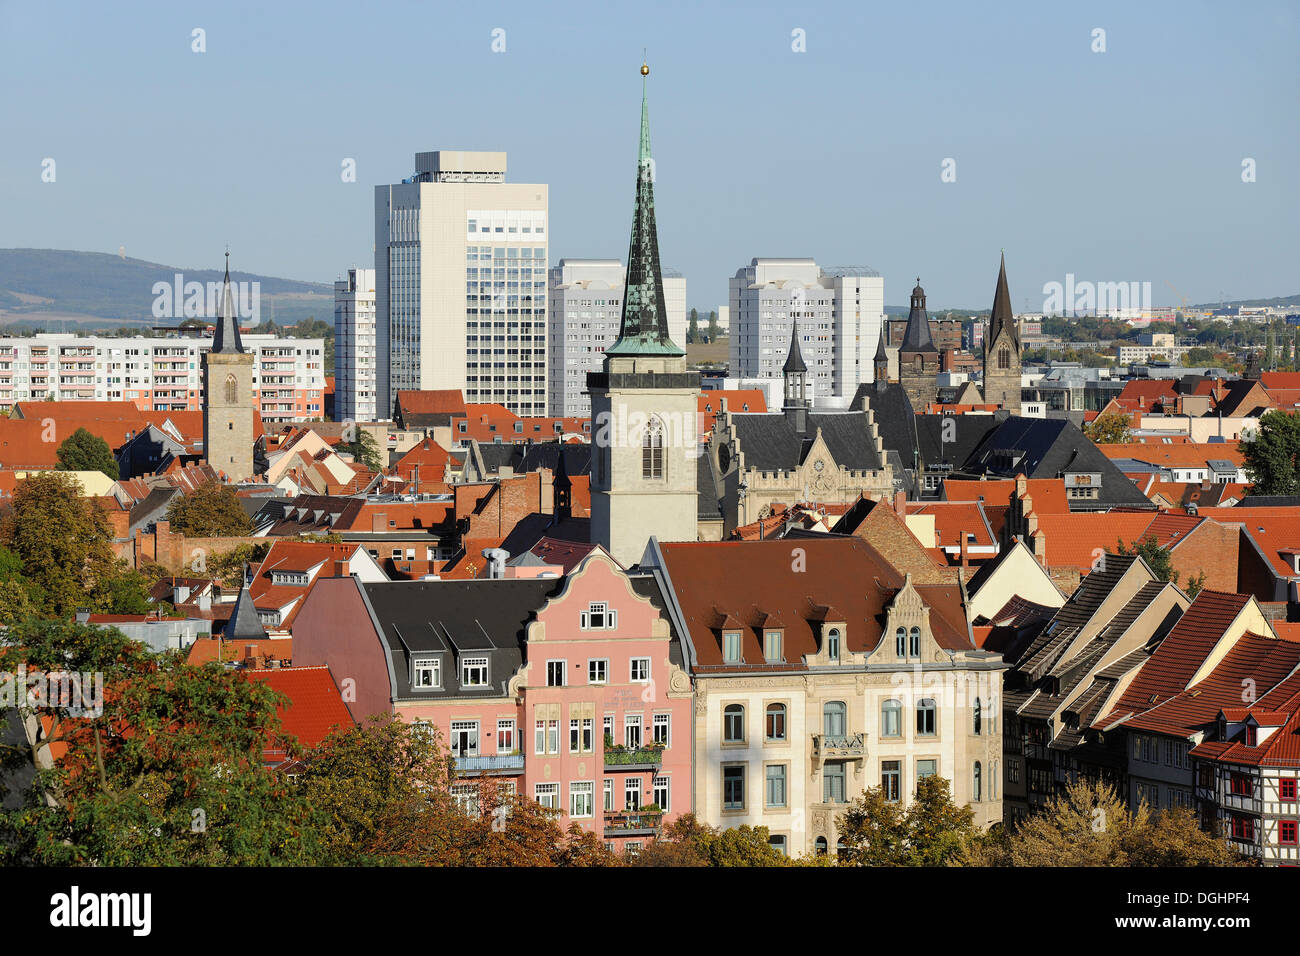 Town centre of Erfurt, spire of the All Saints' Church at front, town hall on the right, Erfurt, Thuringia, Germany - Stock Image